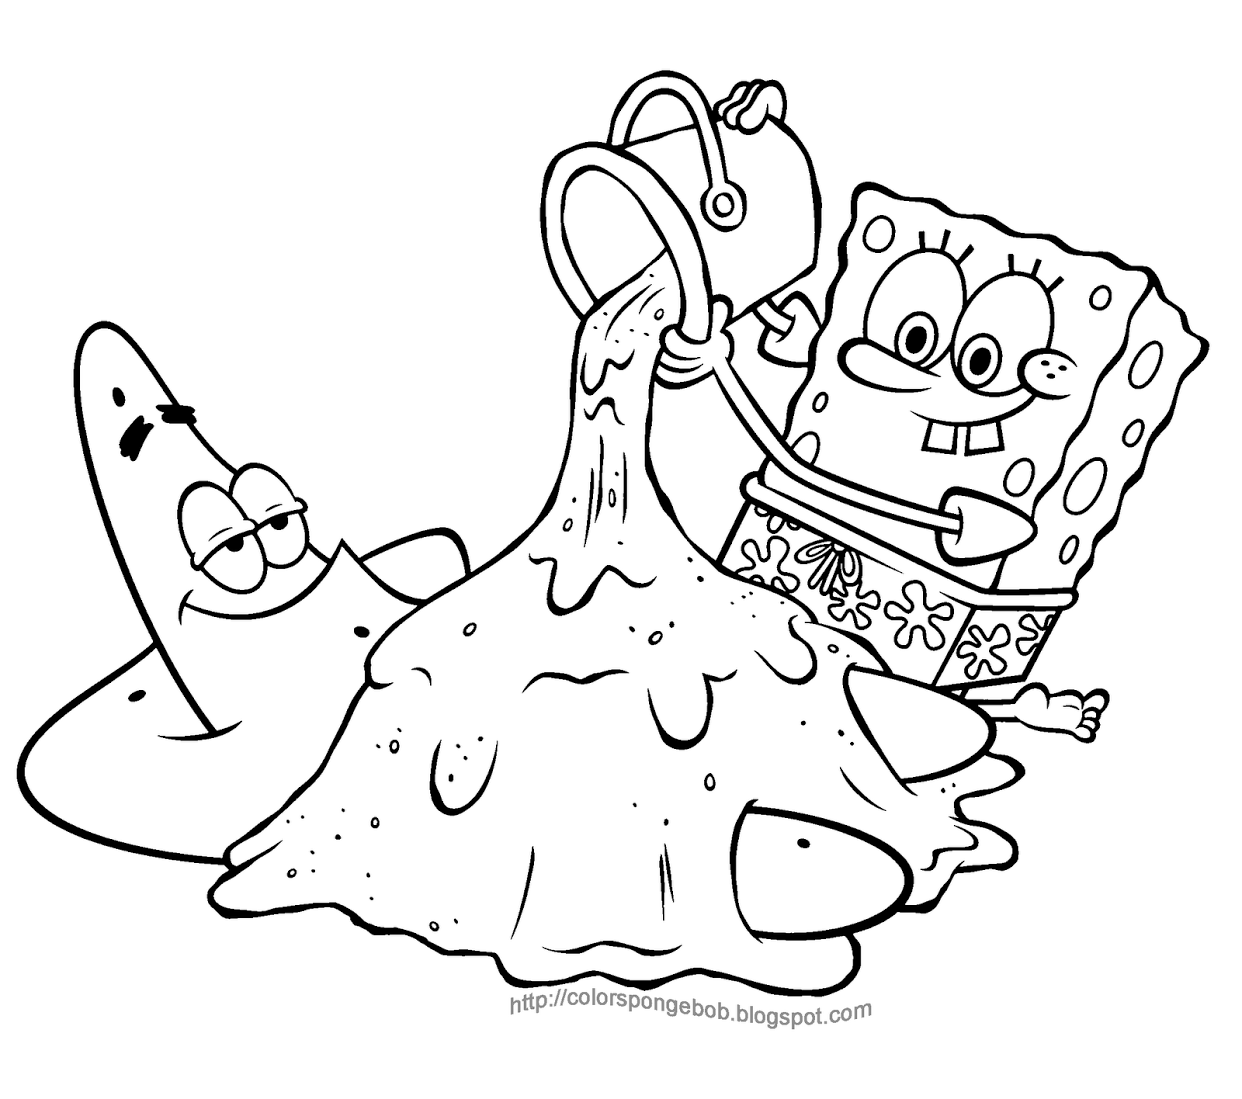 Spongebob Printable Coloring Pages Only Coloring Pages Summer Coloring Pages Beach Coloring Pages Crayola Coloring Pages